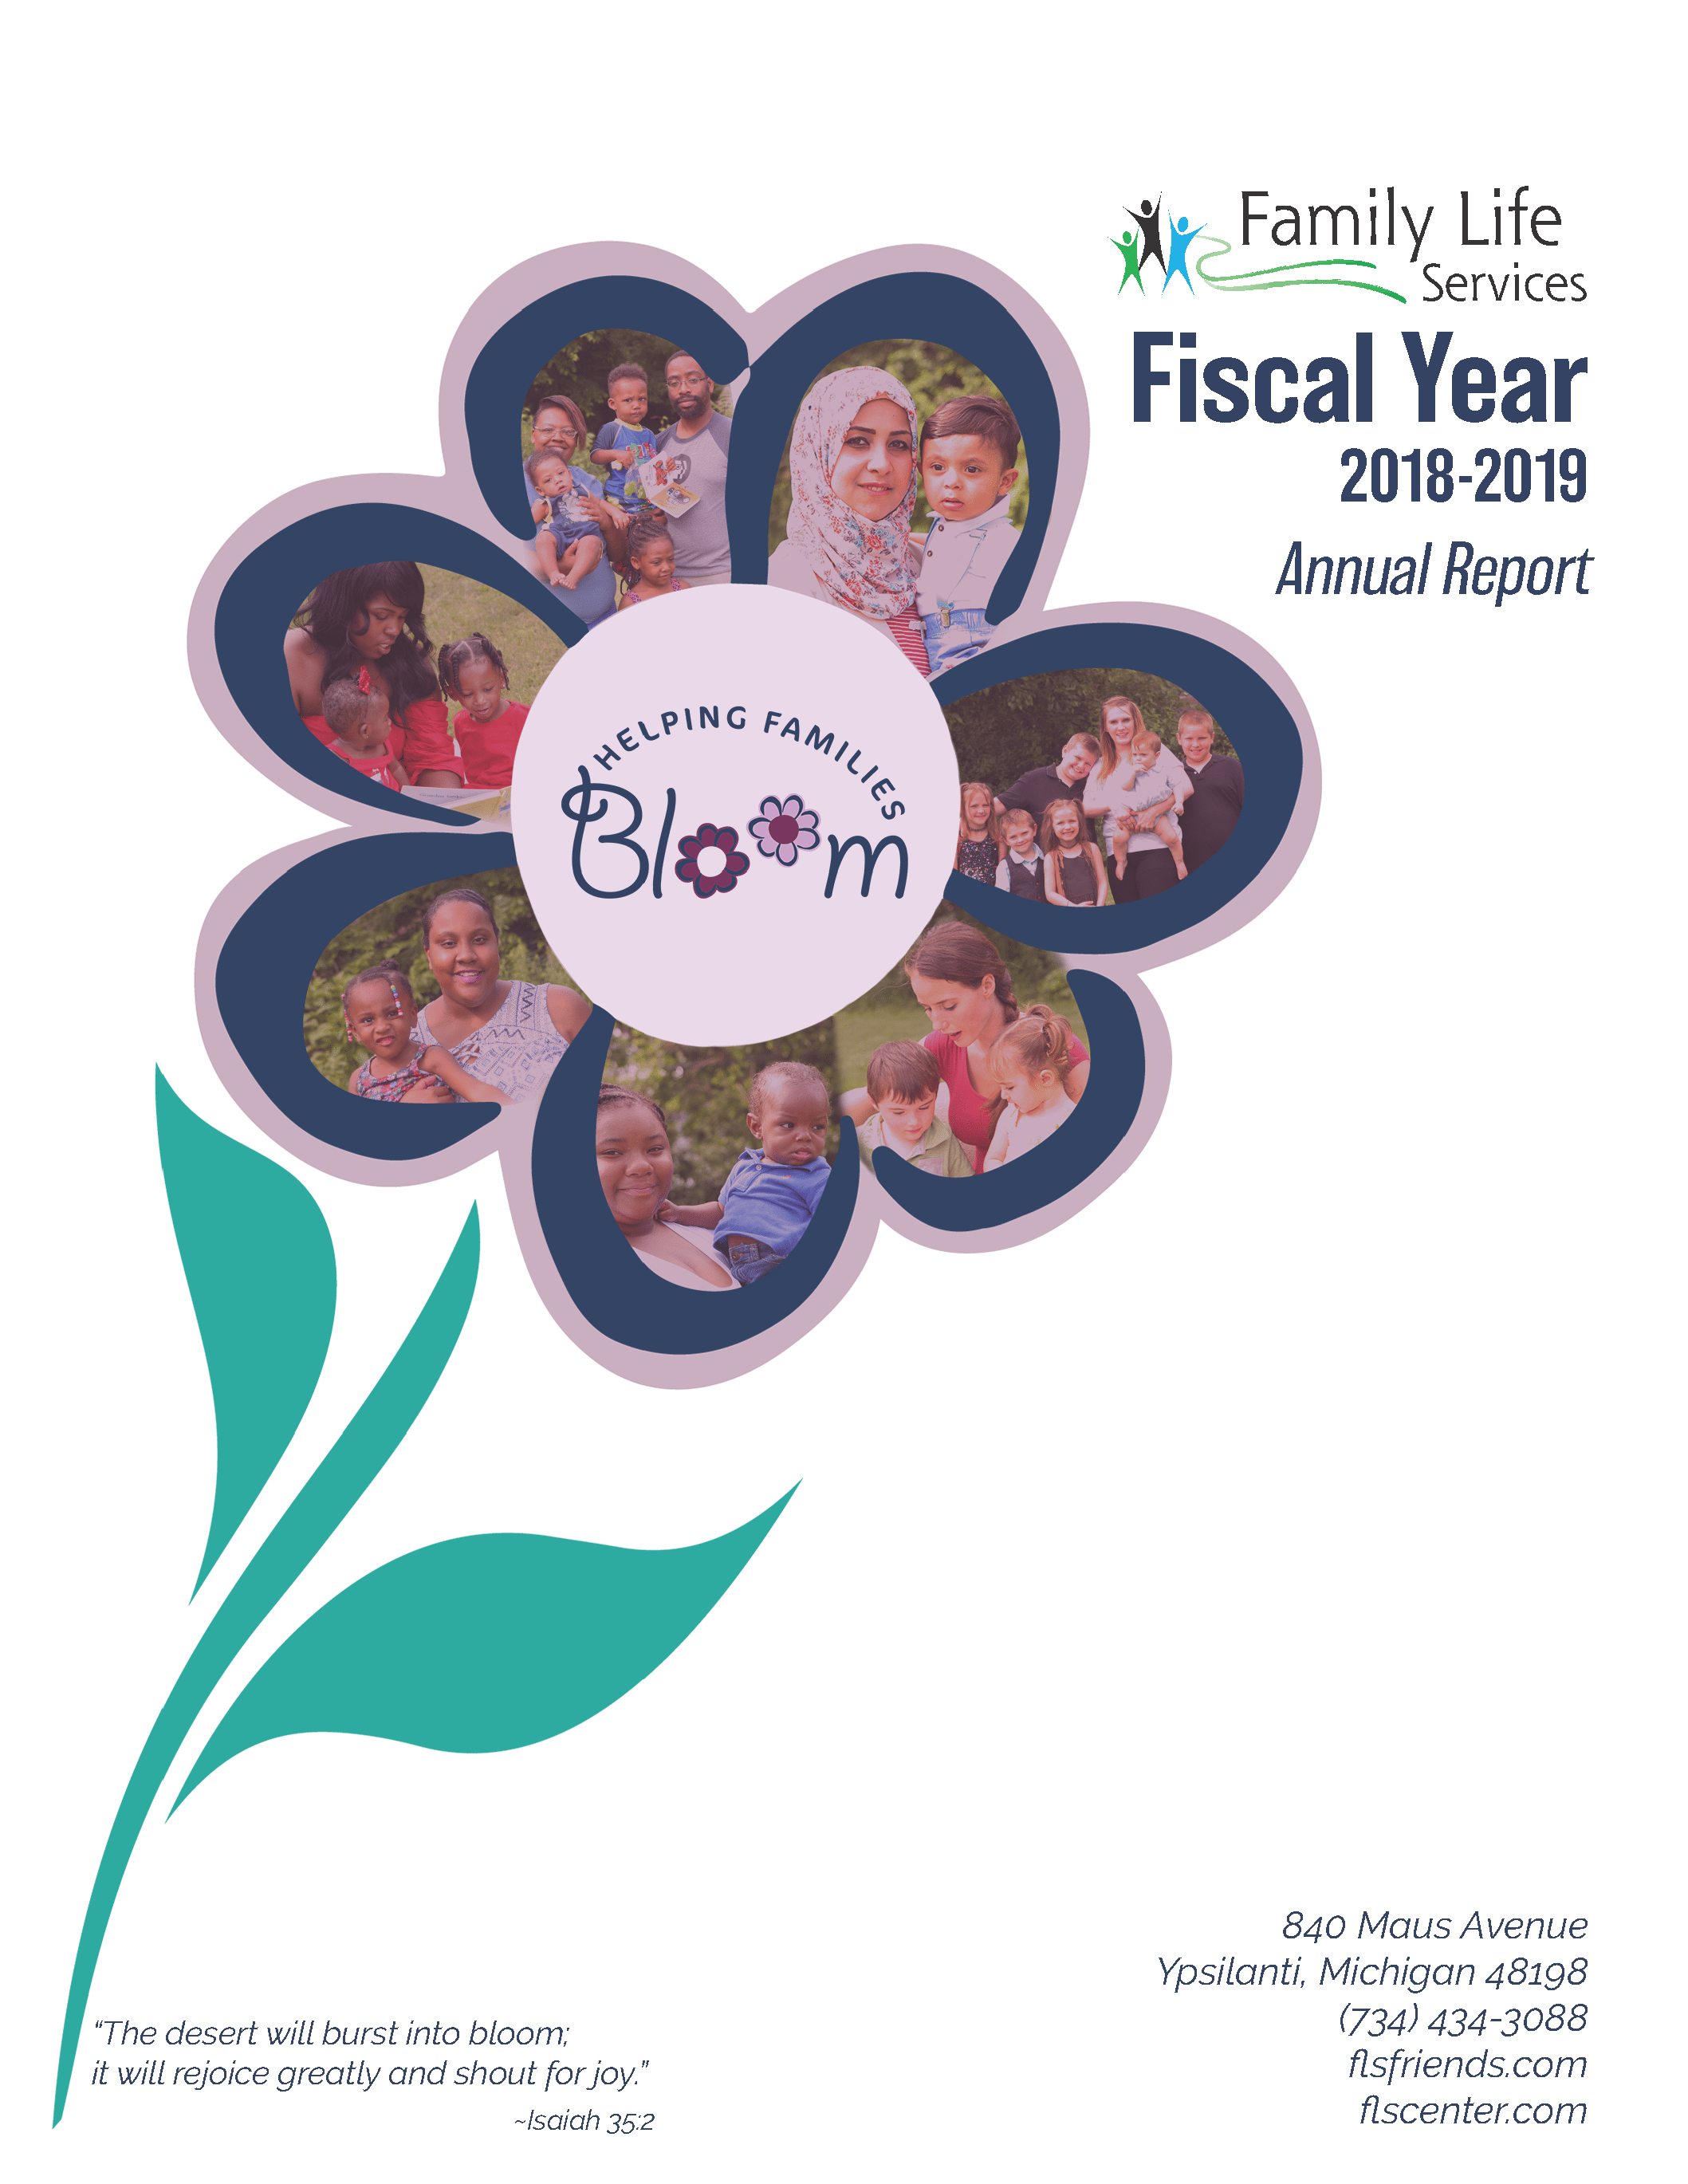 Family Life Services Fiscal Year 2018 - 2019 Annual Report, Helping Families Bloom, 840 Maus Avenue, Ypsilanti, Michigan 48198, 734.434.3088, flsfriends.com, flscenter.com,